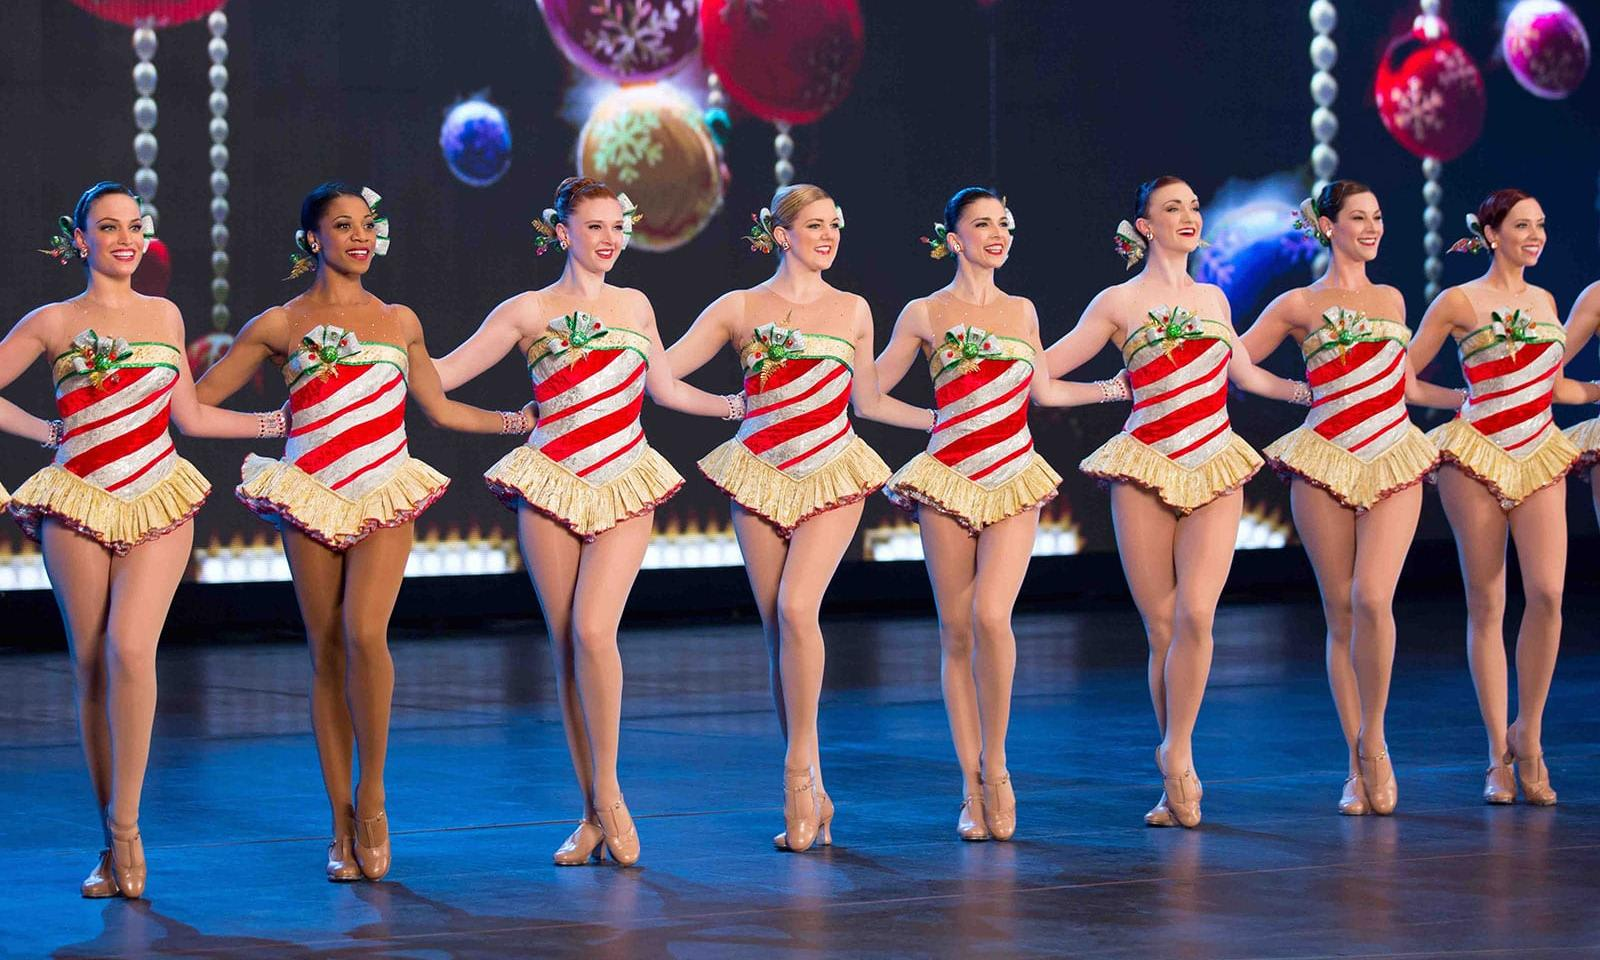 Add to myNY Home › Other Shows › Radio City Christmas Spectacular